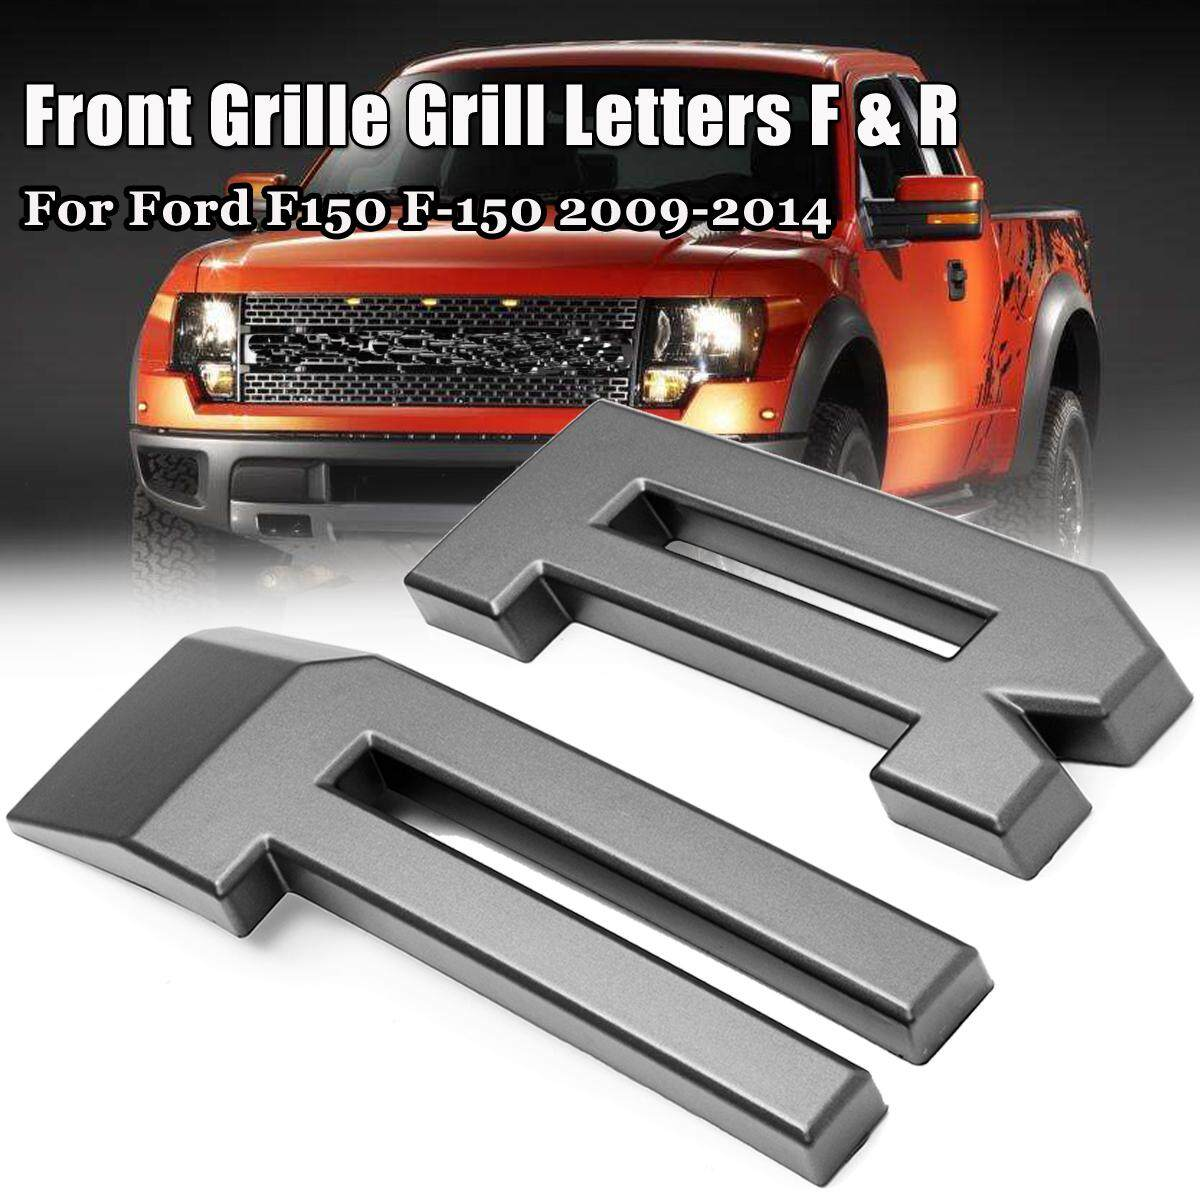 Car Grilles For Sale Automotive Online Brands Prices Grill Bumper Mistubishi L300 New The Original Ford F150 F 150 Raptor Style Grille Letters R 09